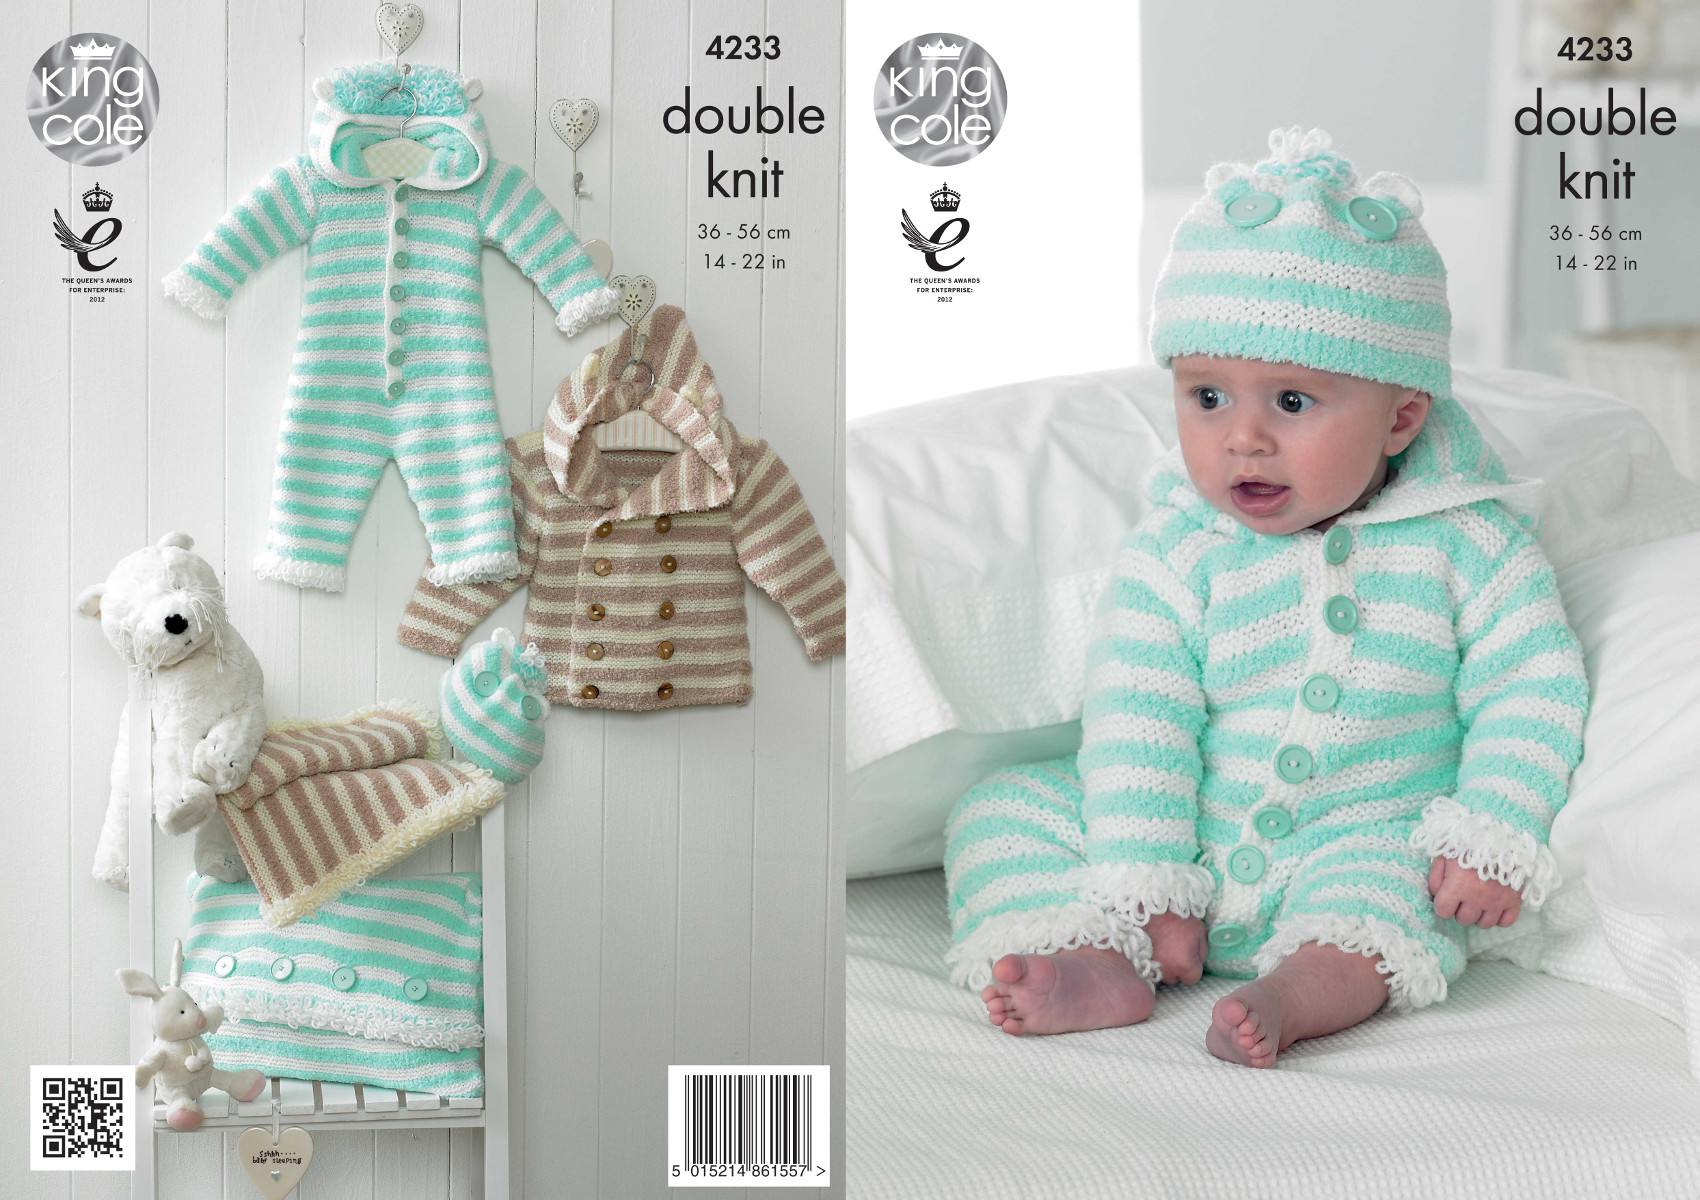 Knitting Patterns For Babies Double Knitting : King Cole Cuddles DK Double Knit Pattern Baby Onesie Coat Hat & Blanket 4...